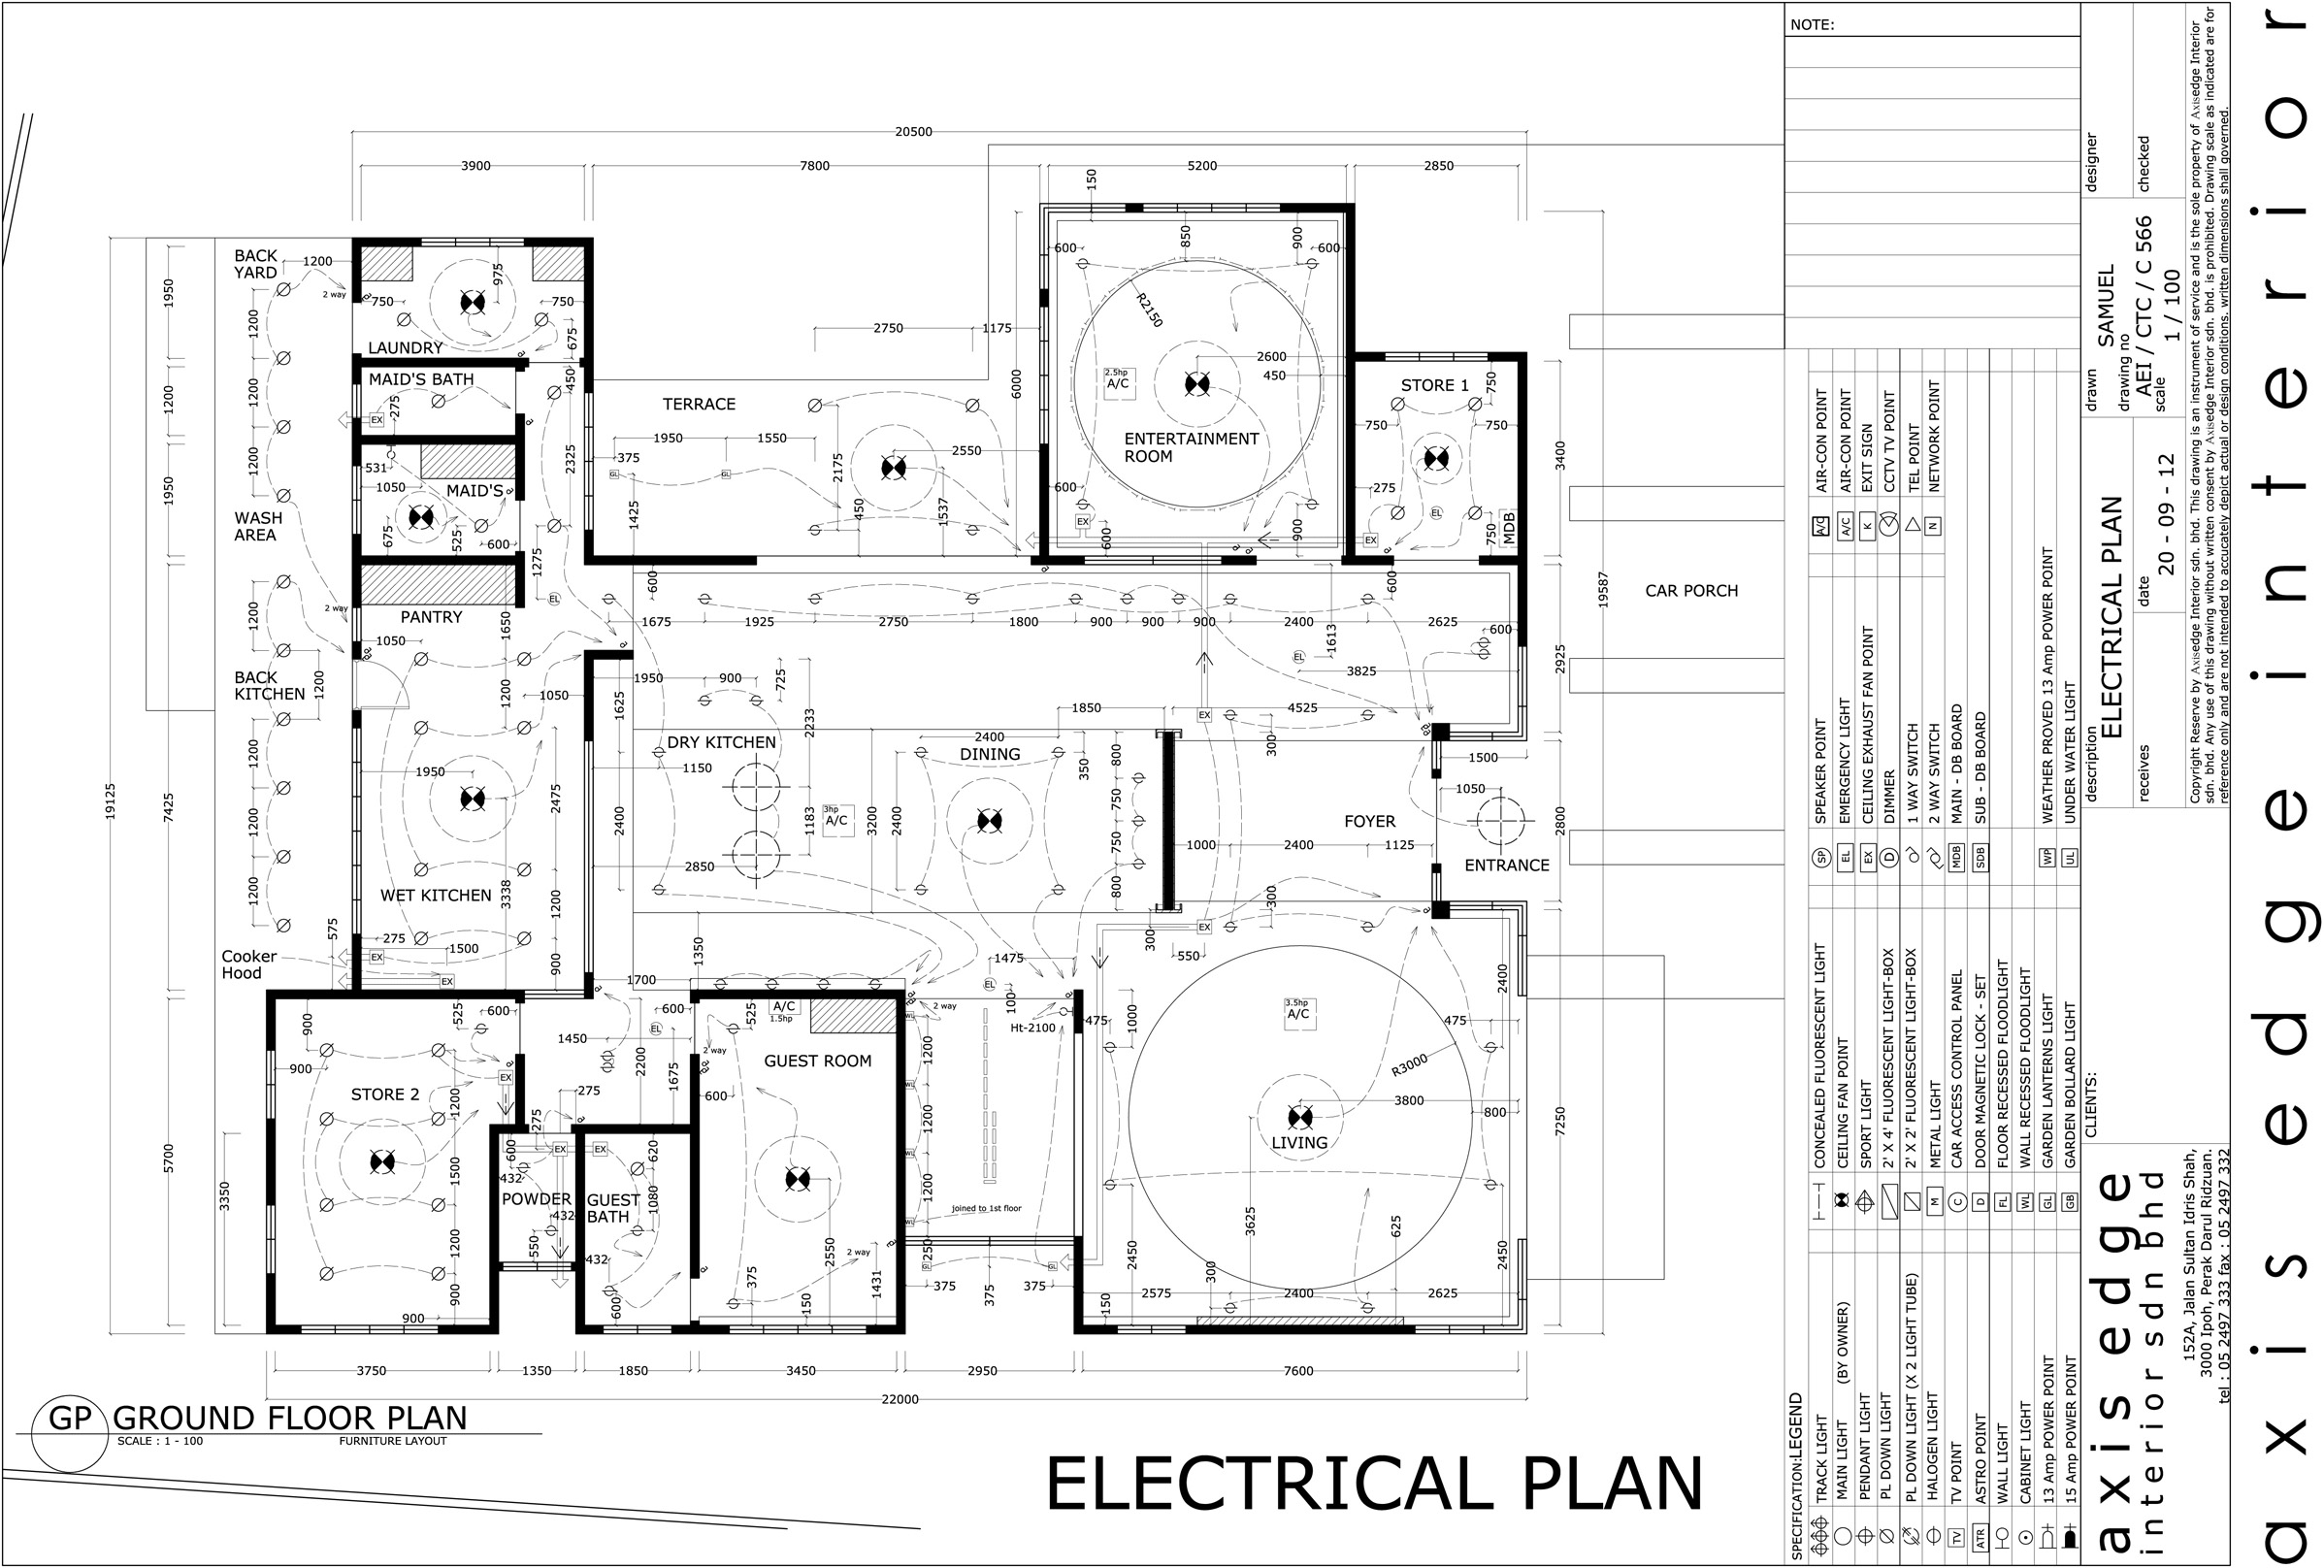 3 phase electrical plan schematic diagram Electrical 480 3 Phase